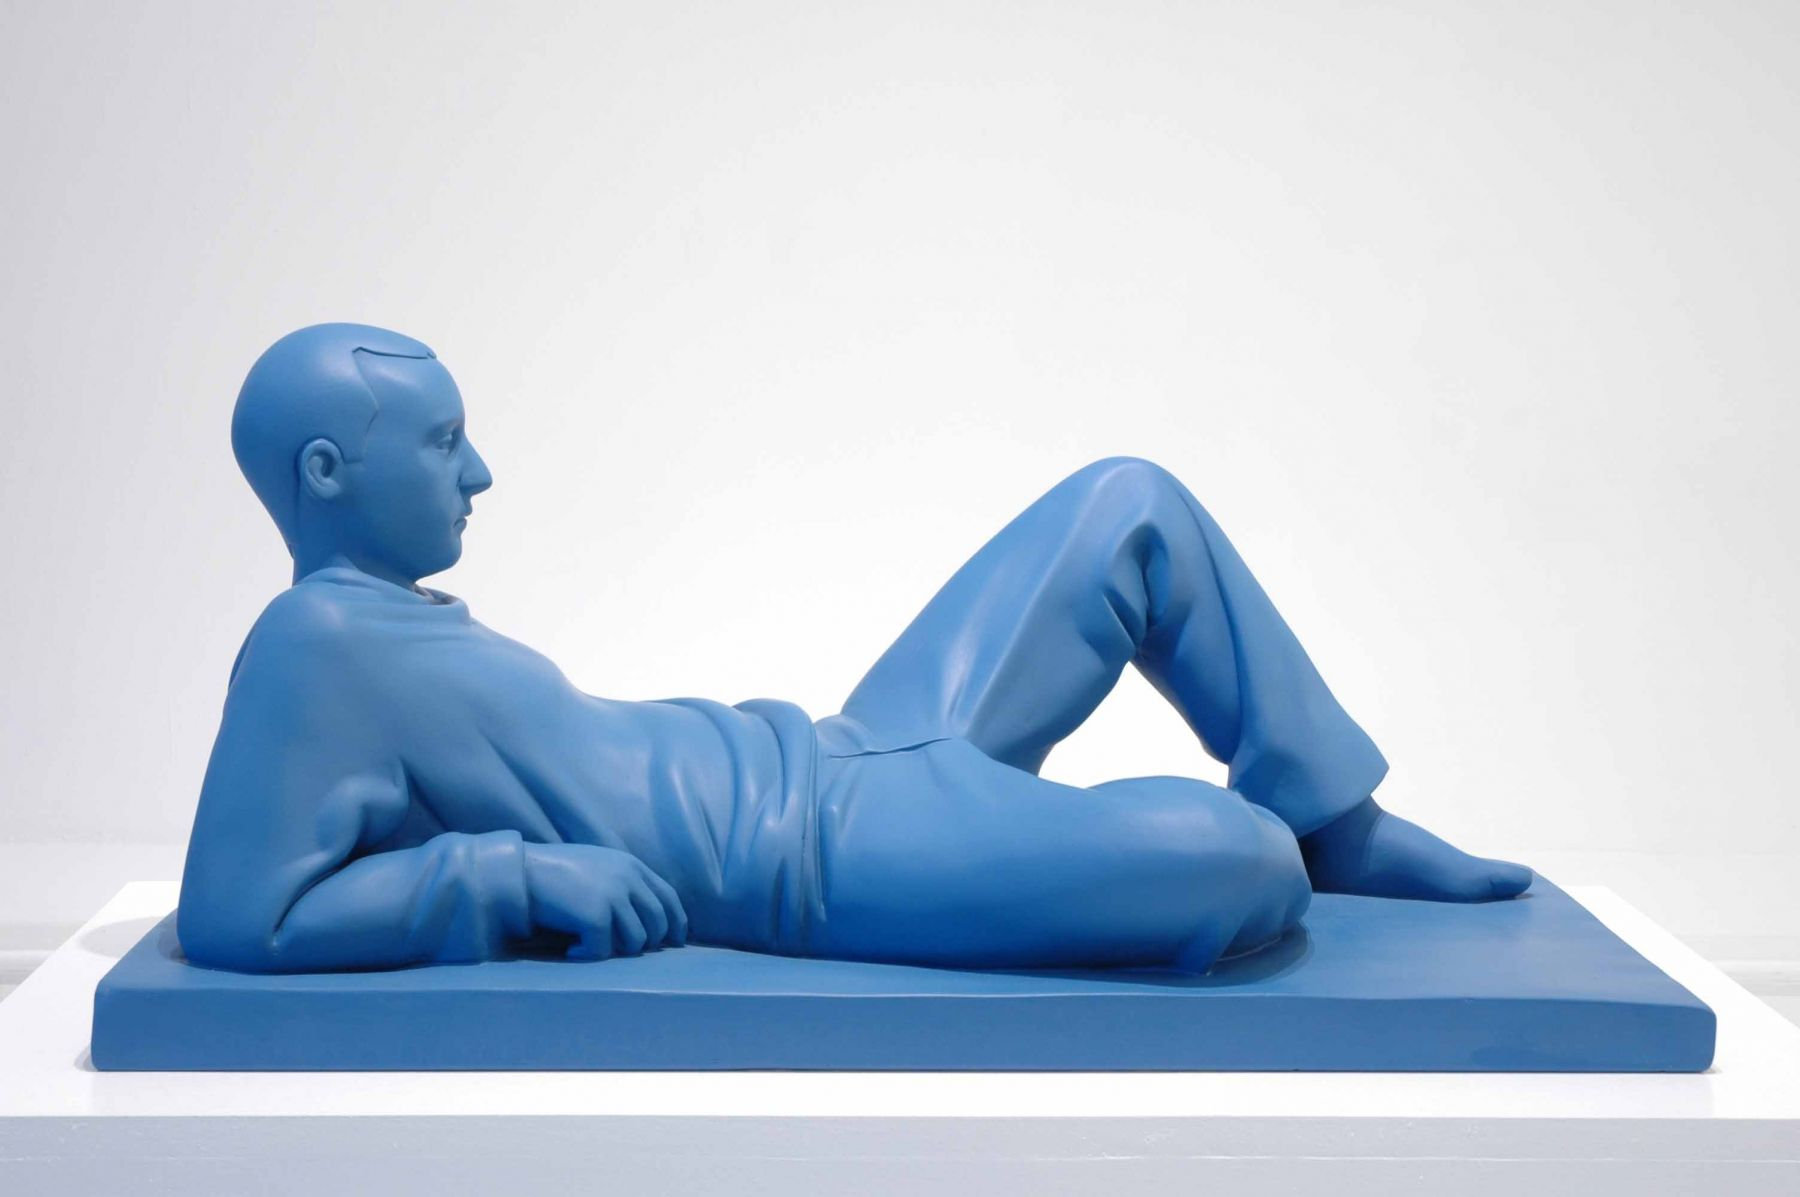 Kenny Hunter Reclining Man glass reinforced plastic and paint, 4 x 30 x 13.5 inches sculpture